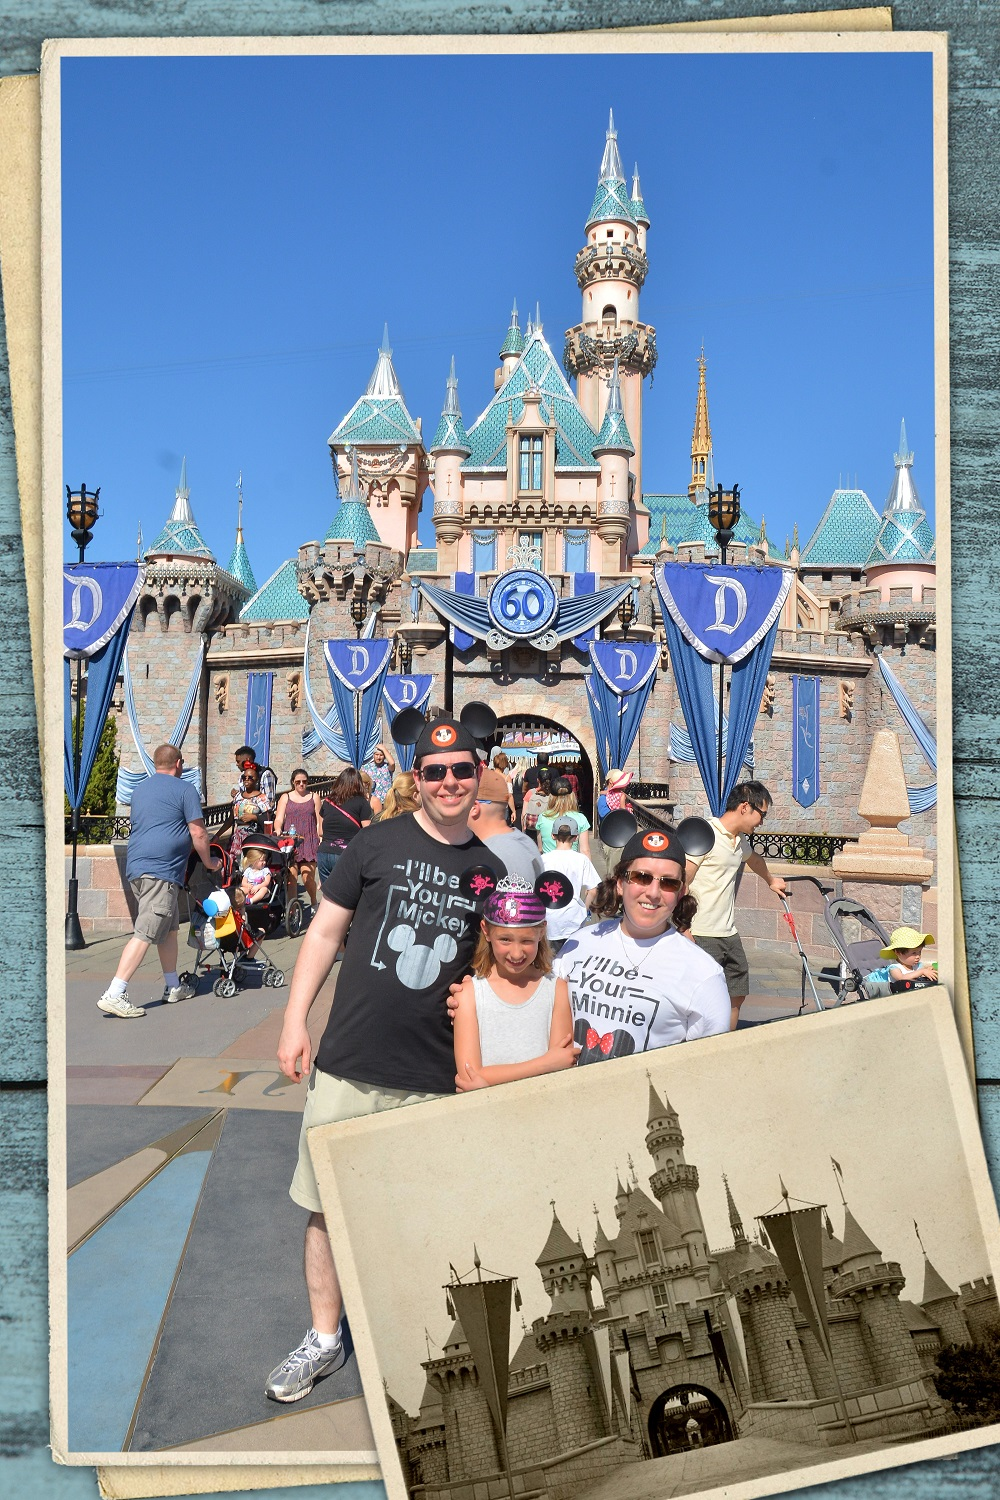 We had to get a photo in front of Sleeping Beauty's castle in Disneyland too!